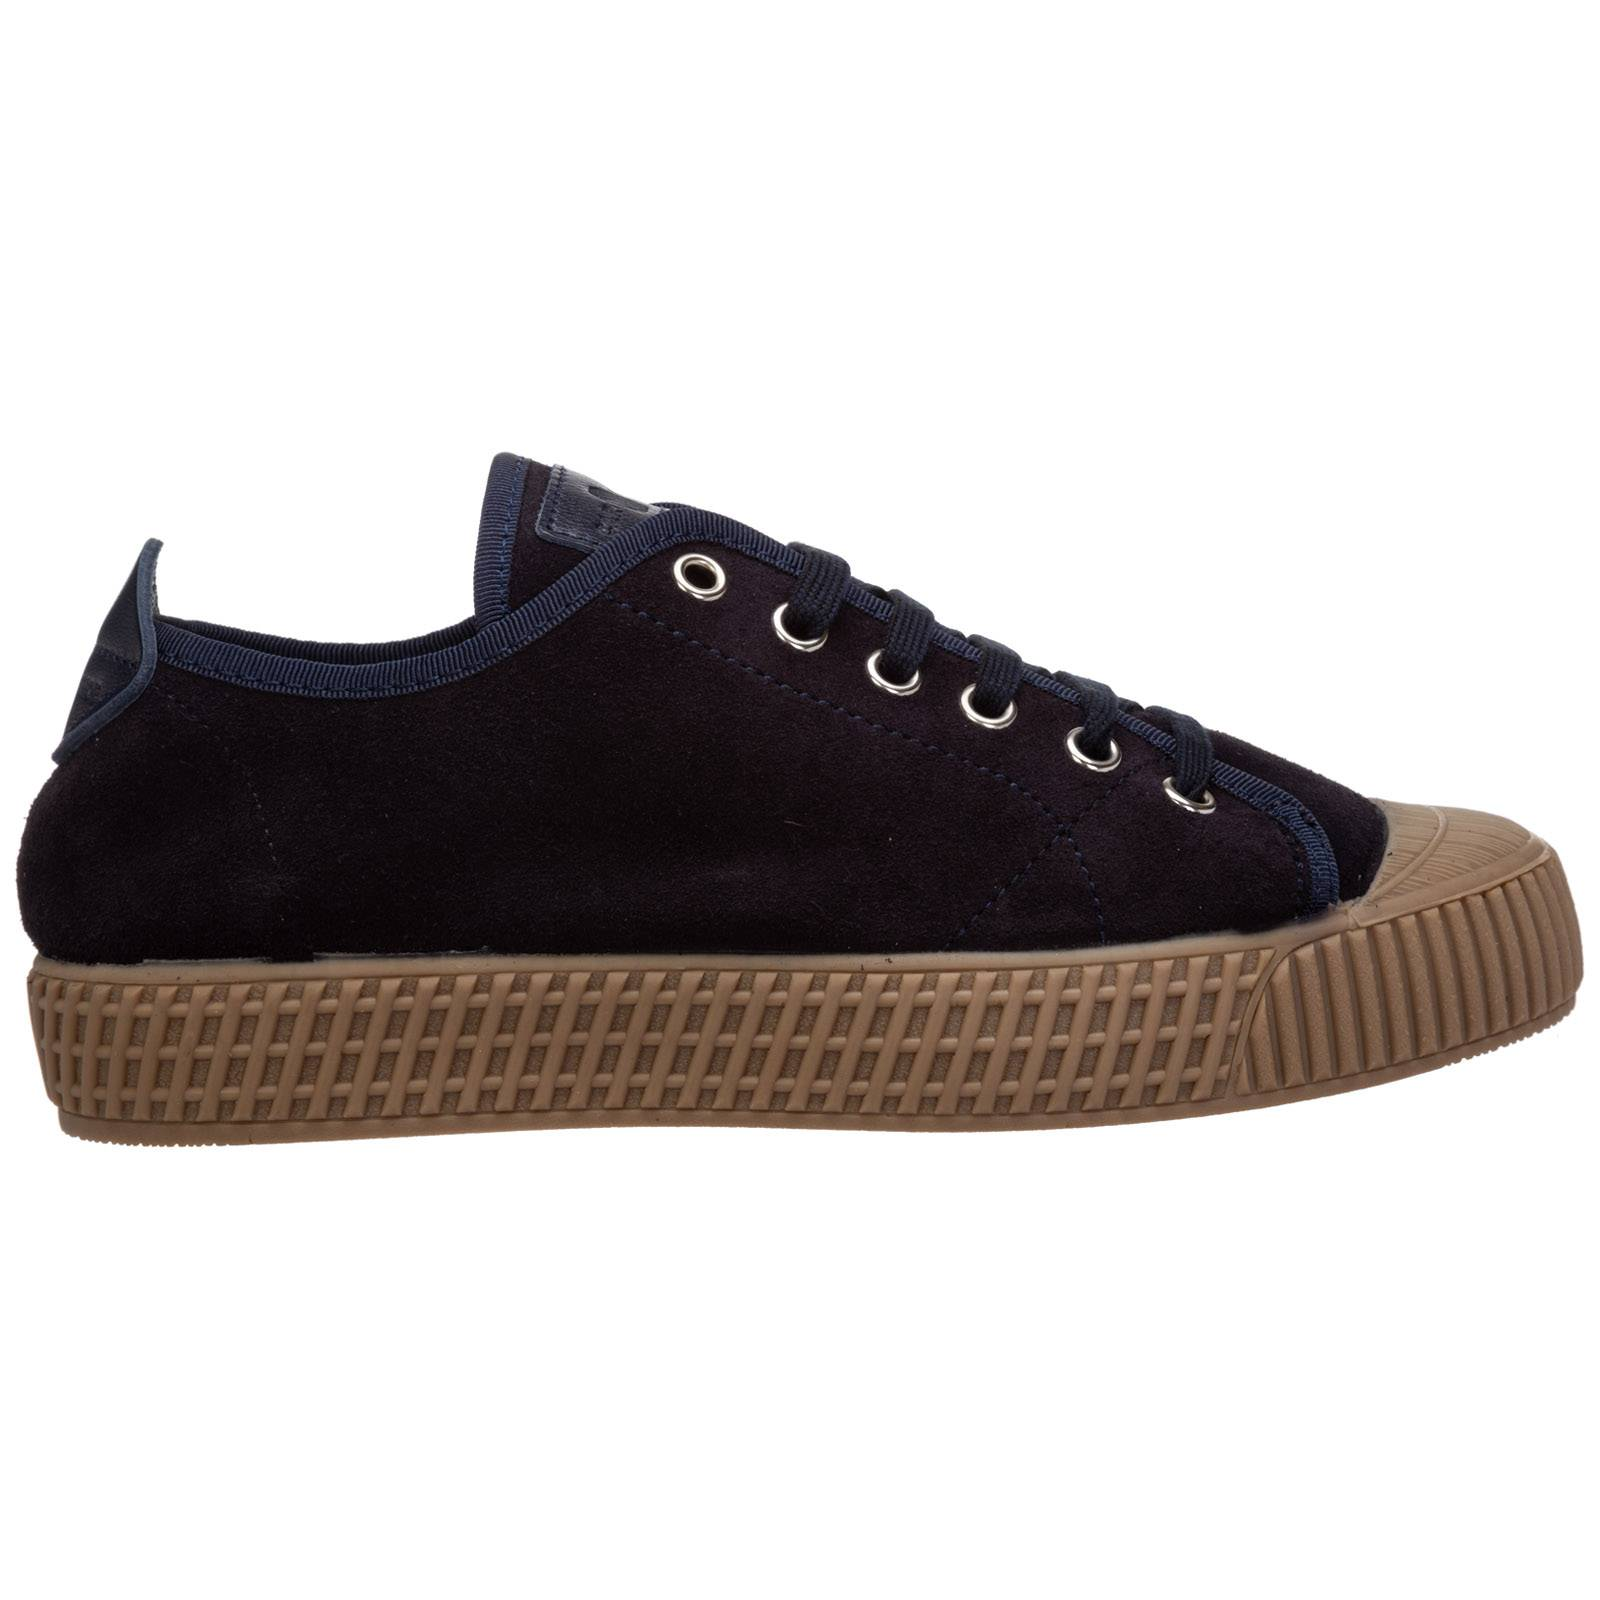 Car Shoe Women's shoes suede trainers sneakers  - Blue - Size: 37